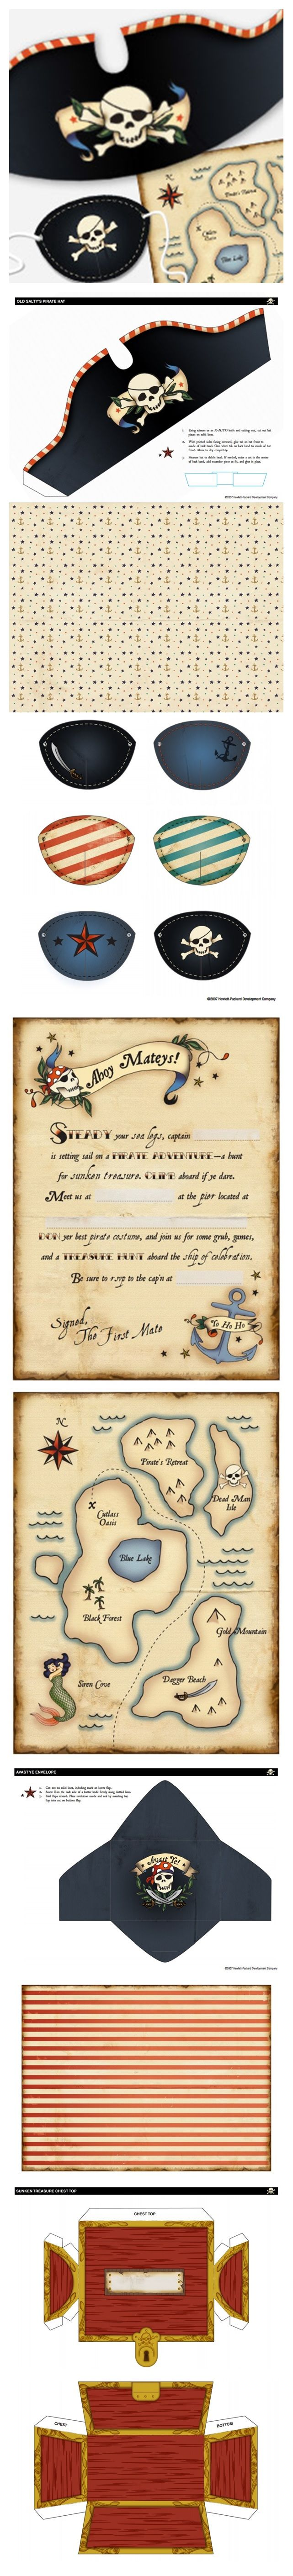 complete printable party decorations and ideas!!